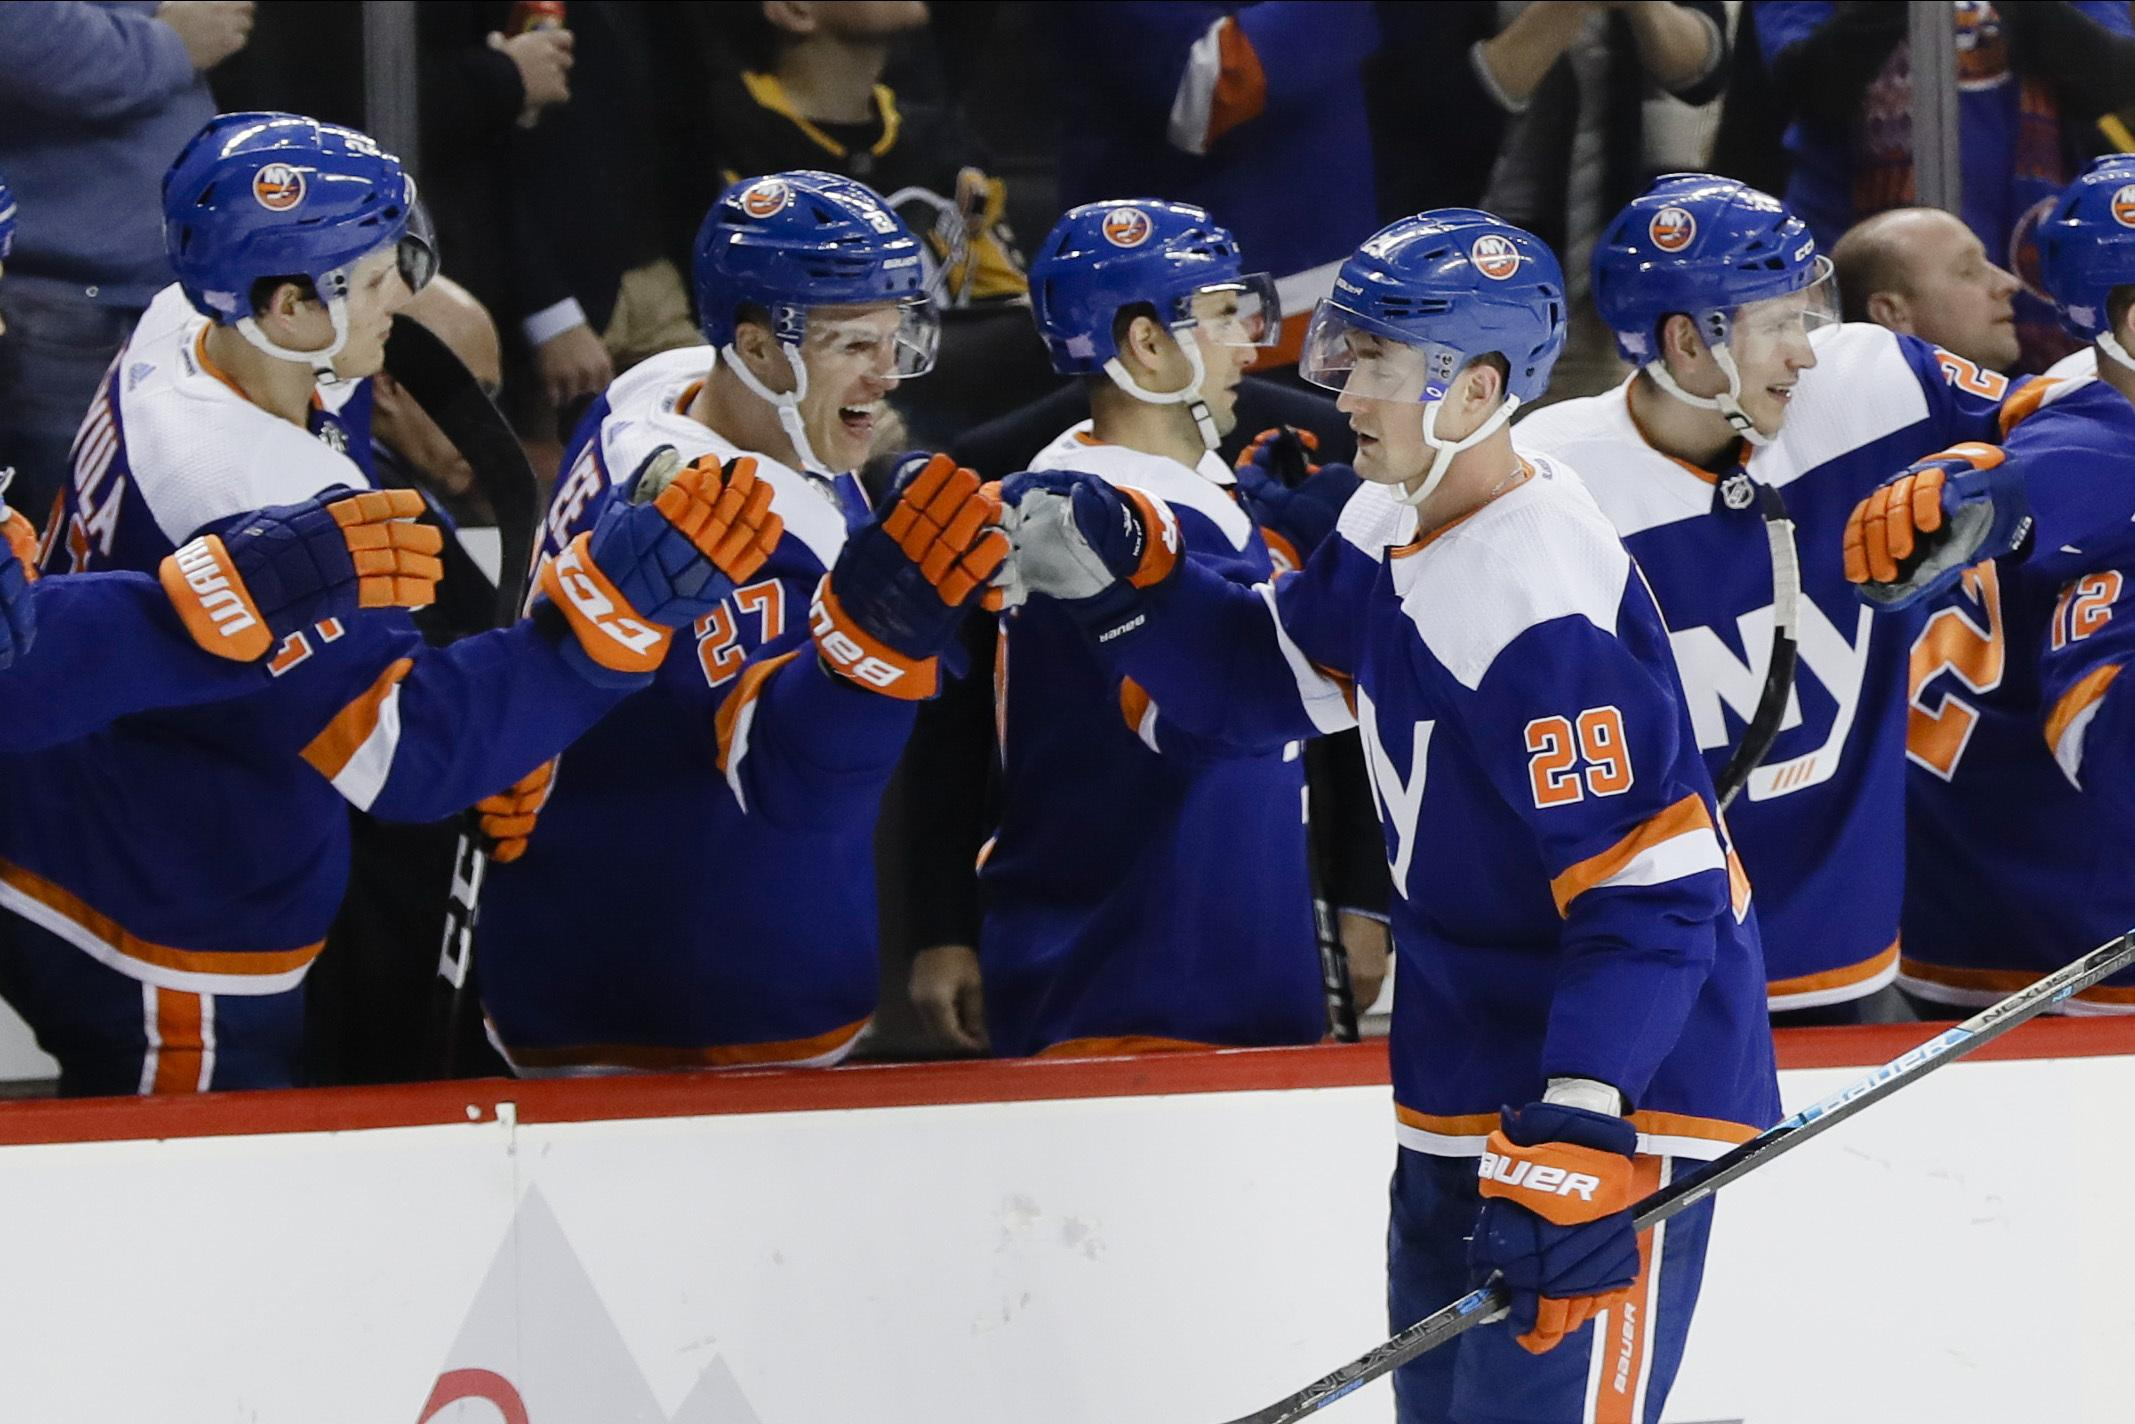 Three takeaways from the Islanders' OT victory over the Penguins